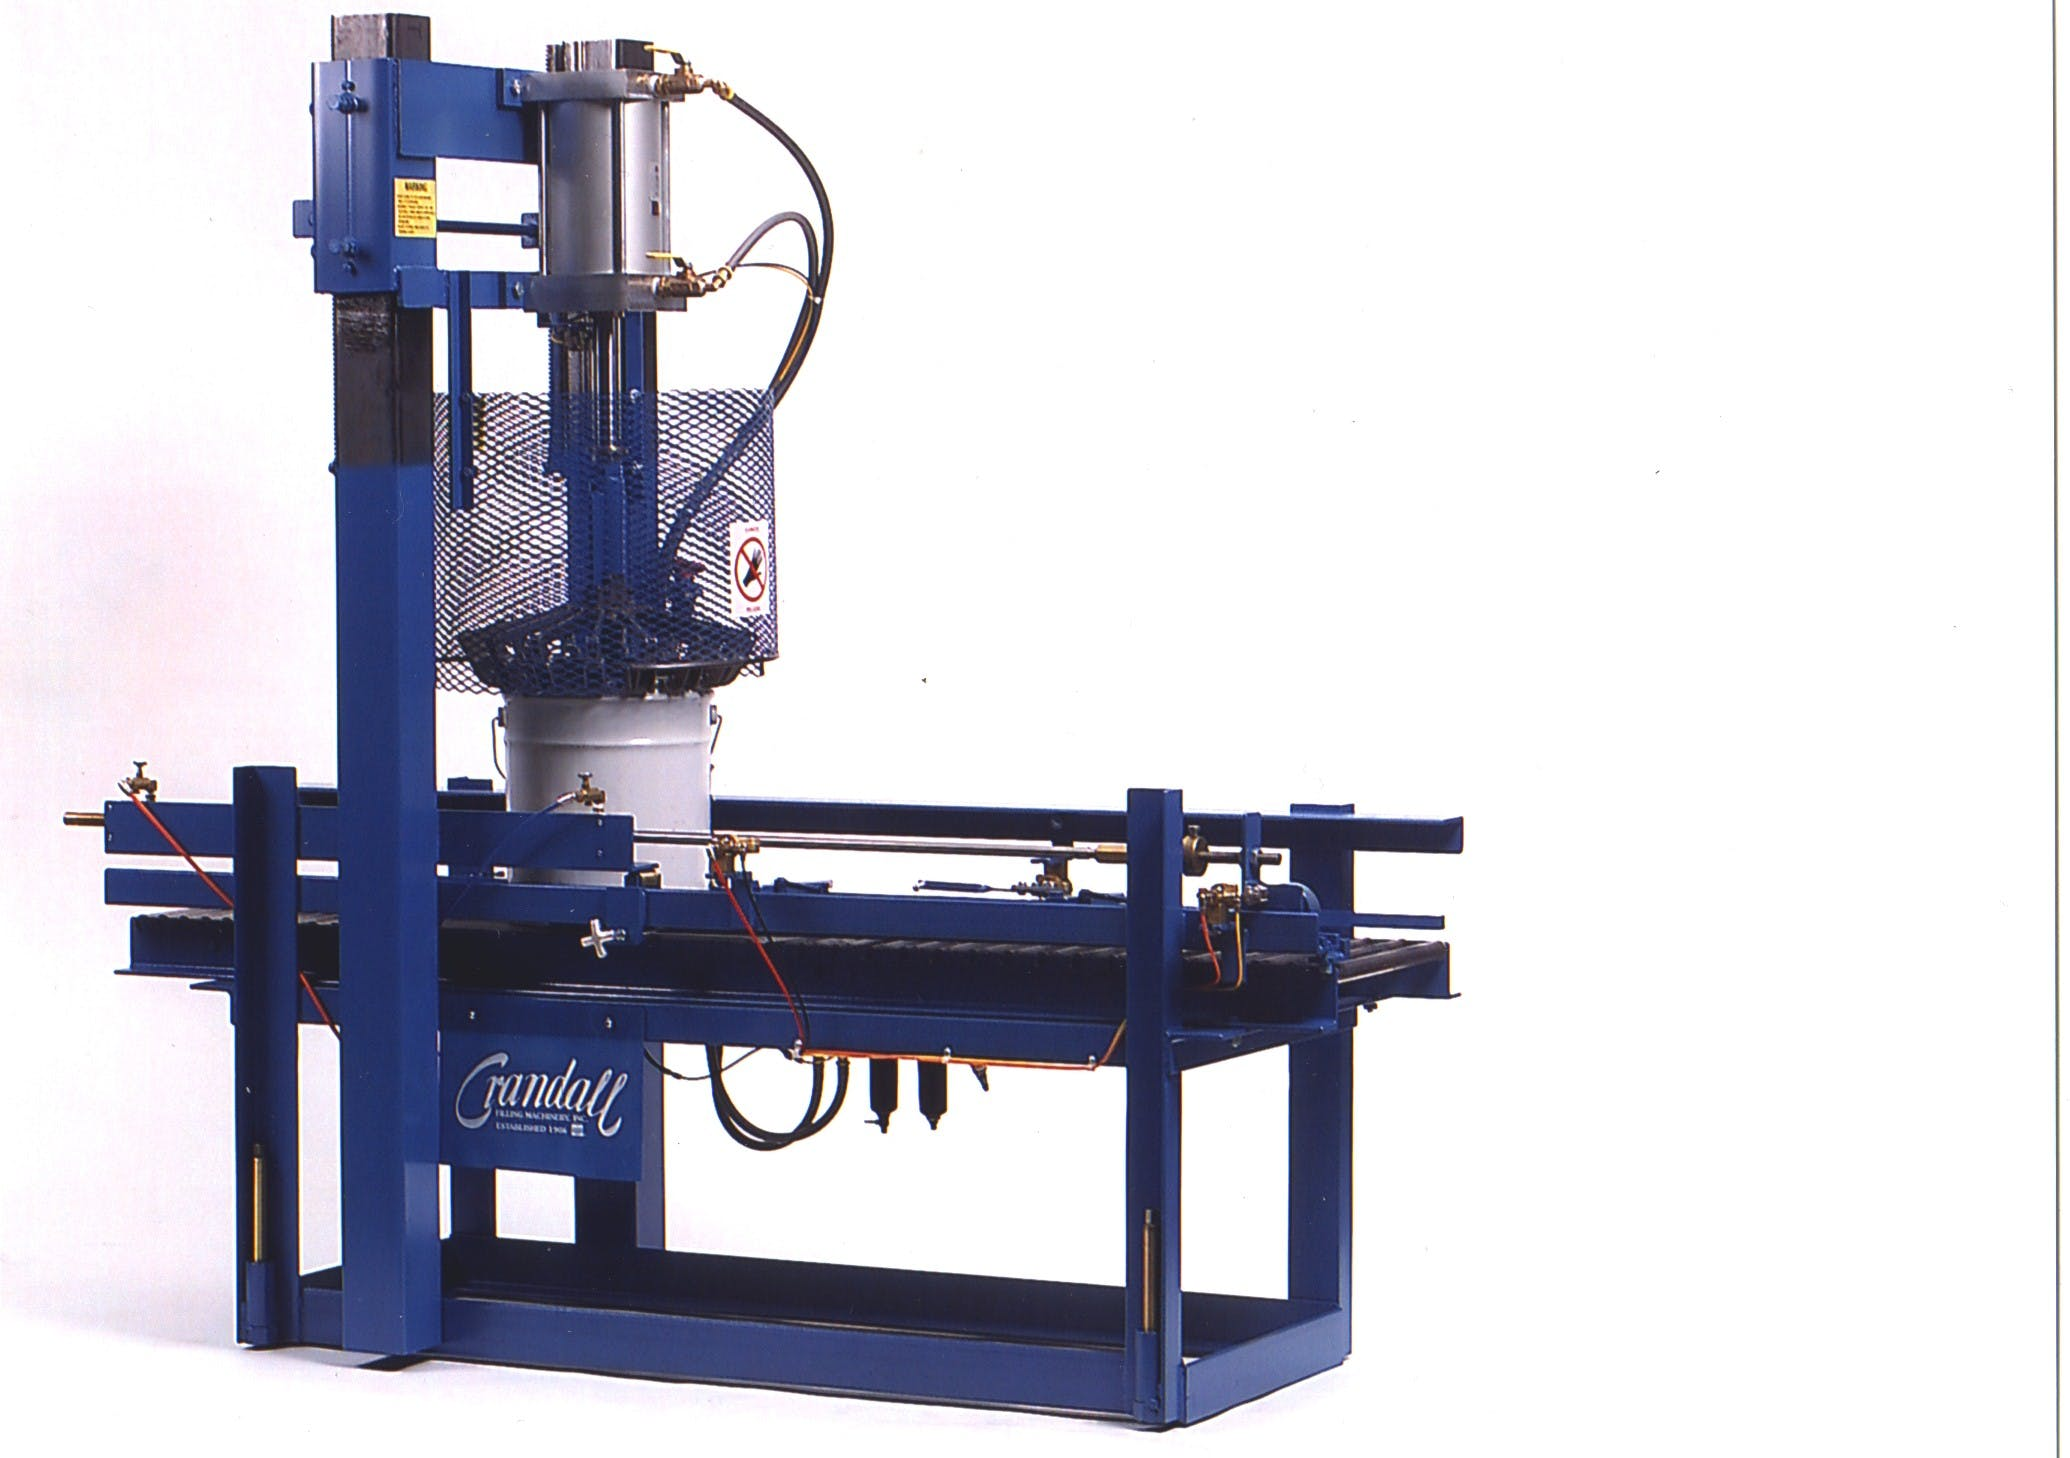 CRA/25 automatic pail closer Bottle crimper sold by Crandall Filling Machinery, Inc.